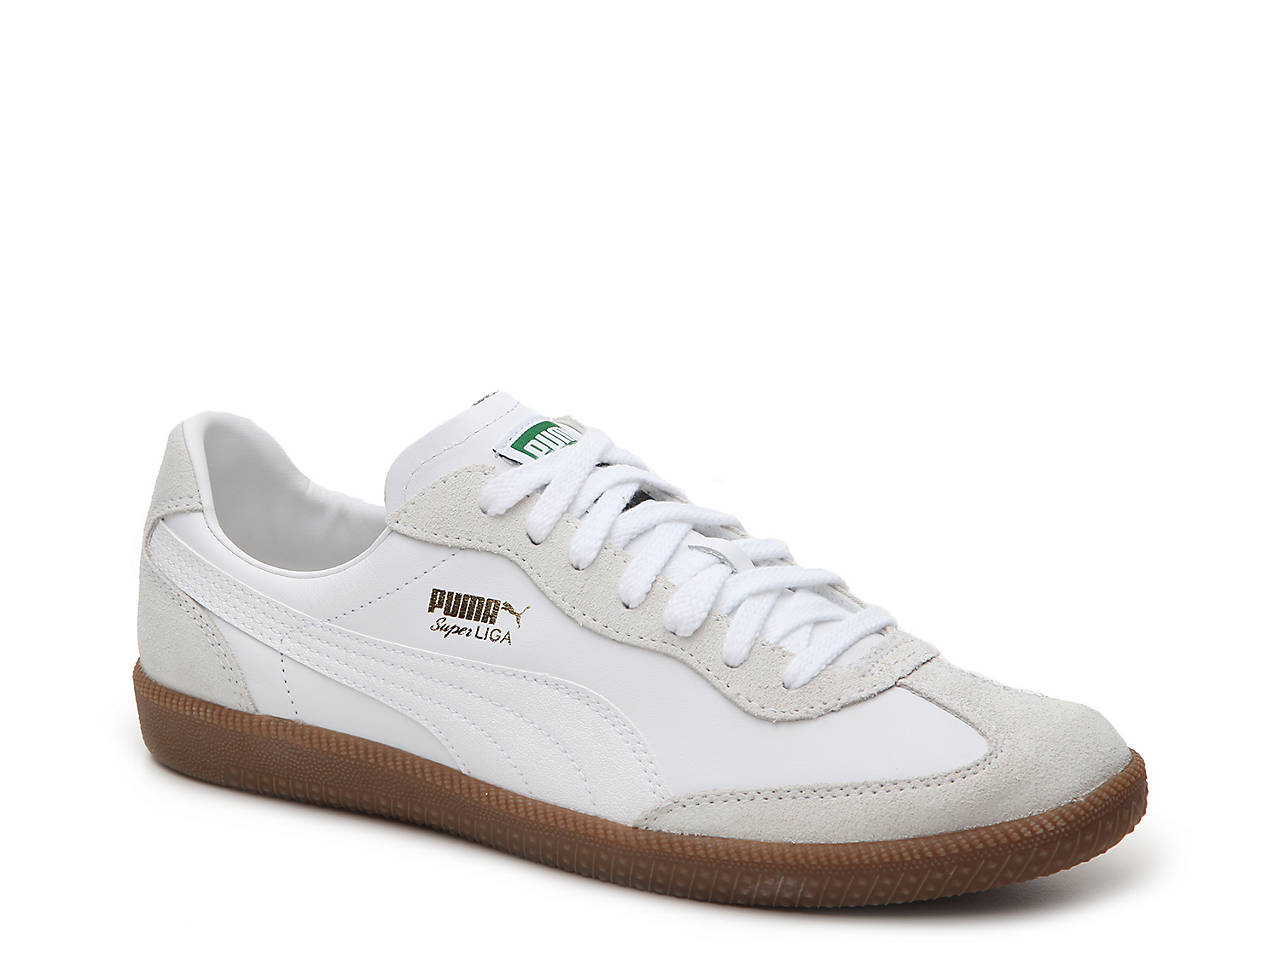 00ae410ecd81 Puma Super Liga OG Retro Sneaker - Men s Men s Shoes